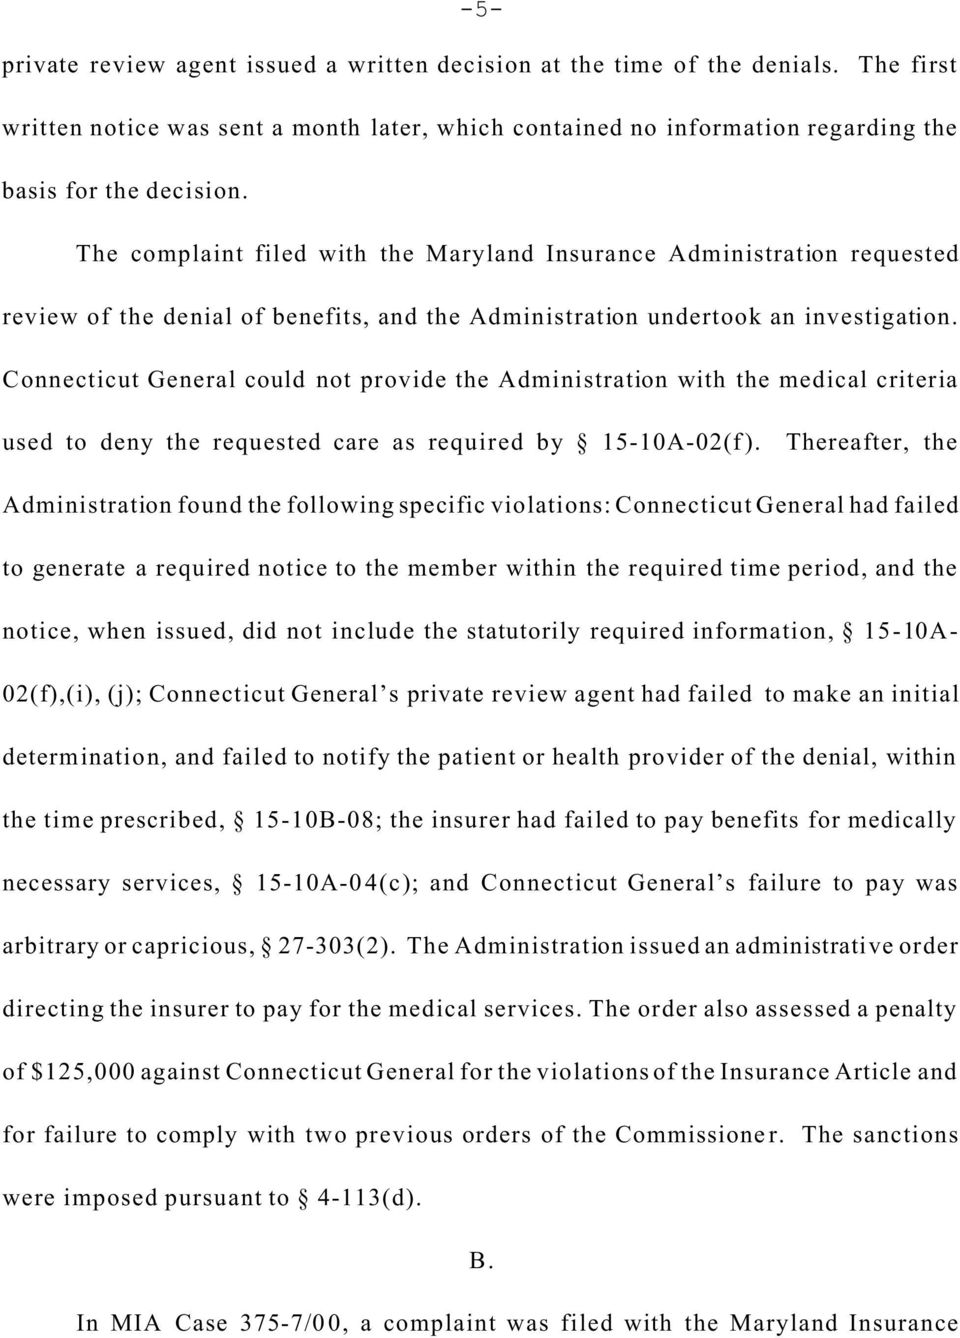 Connecticut General could not provide the Administration with the medical criteria used to deny the requested care as required by 15-10A-02(f).